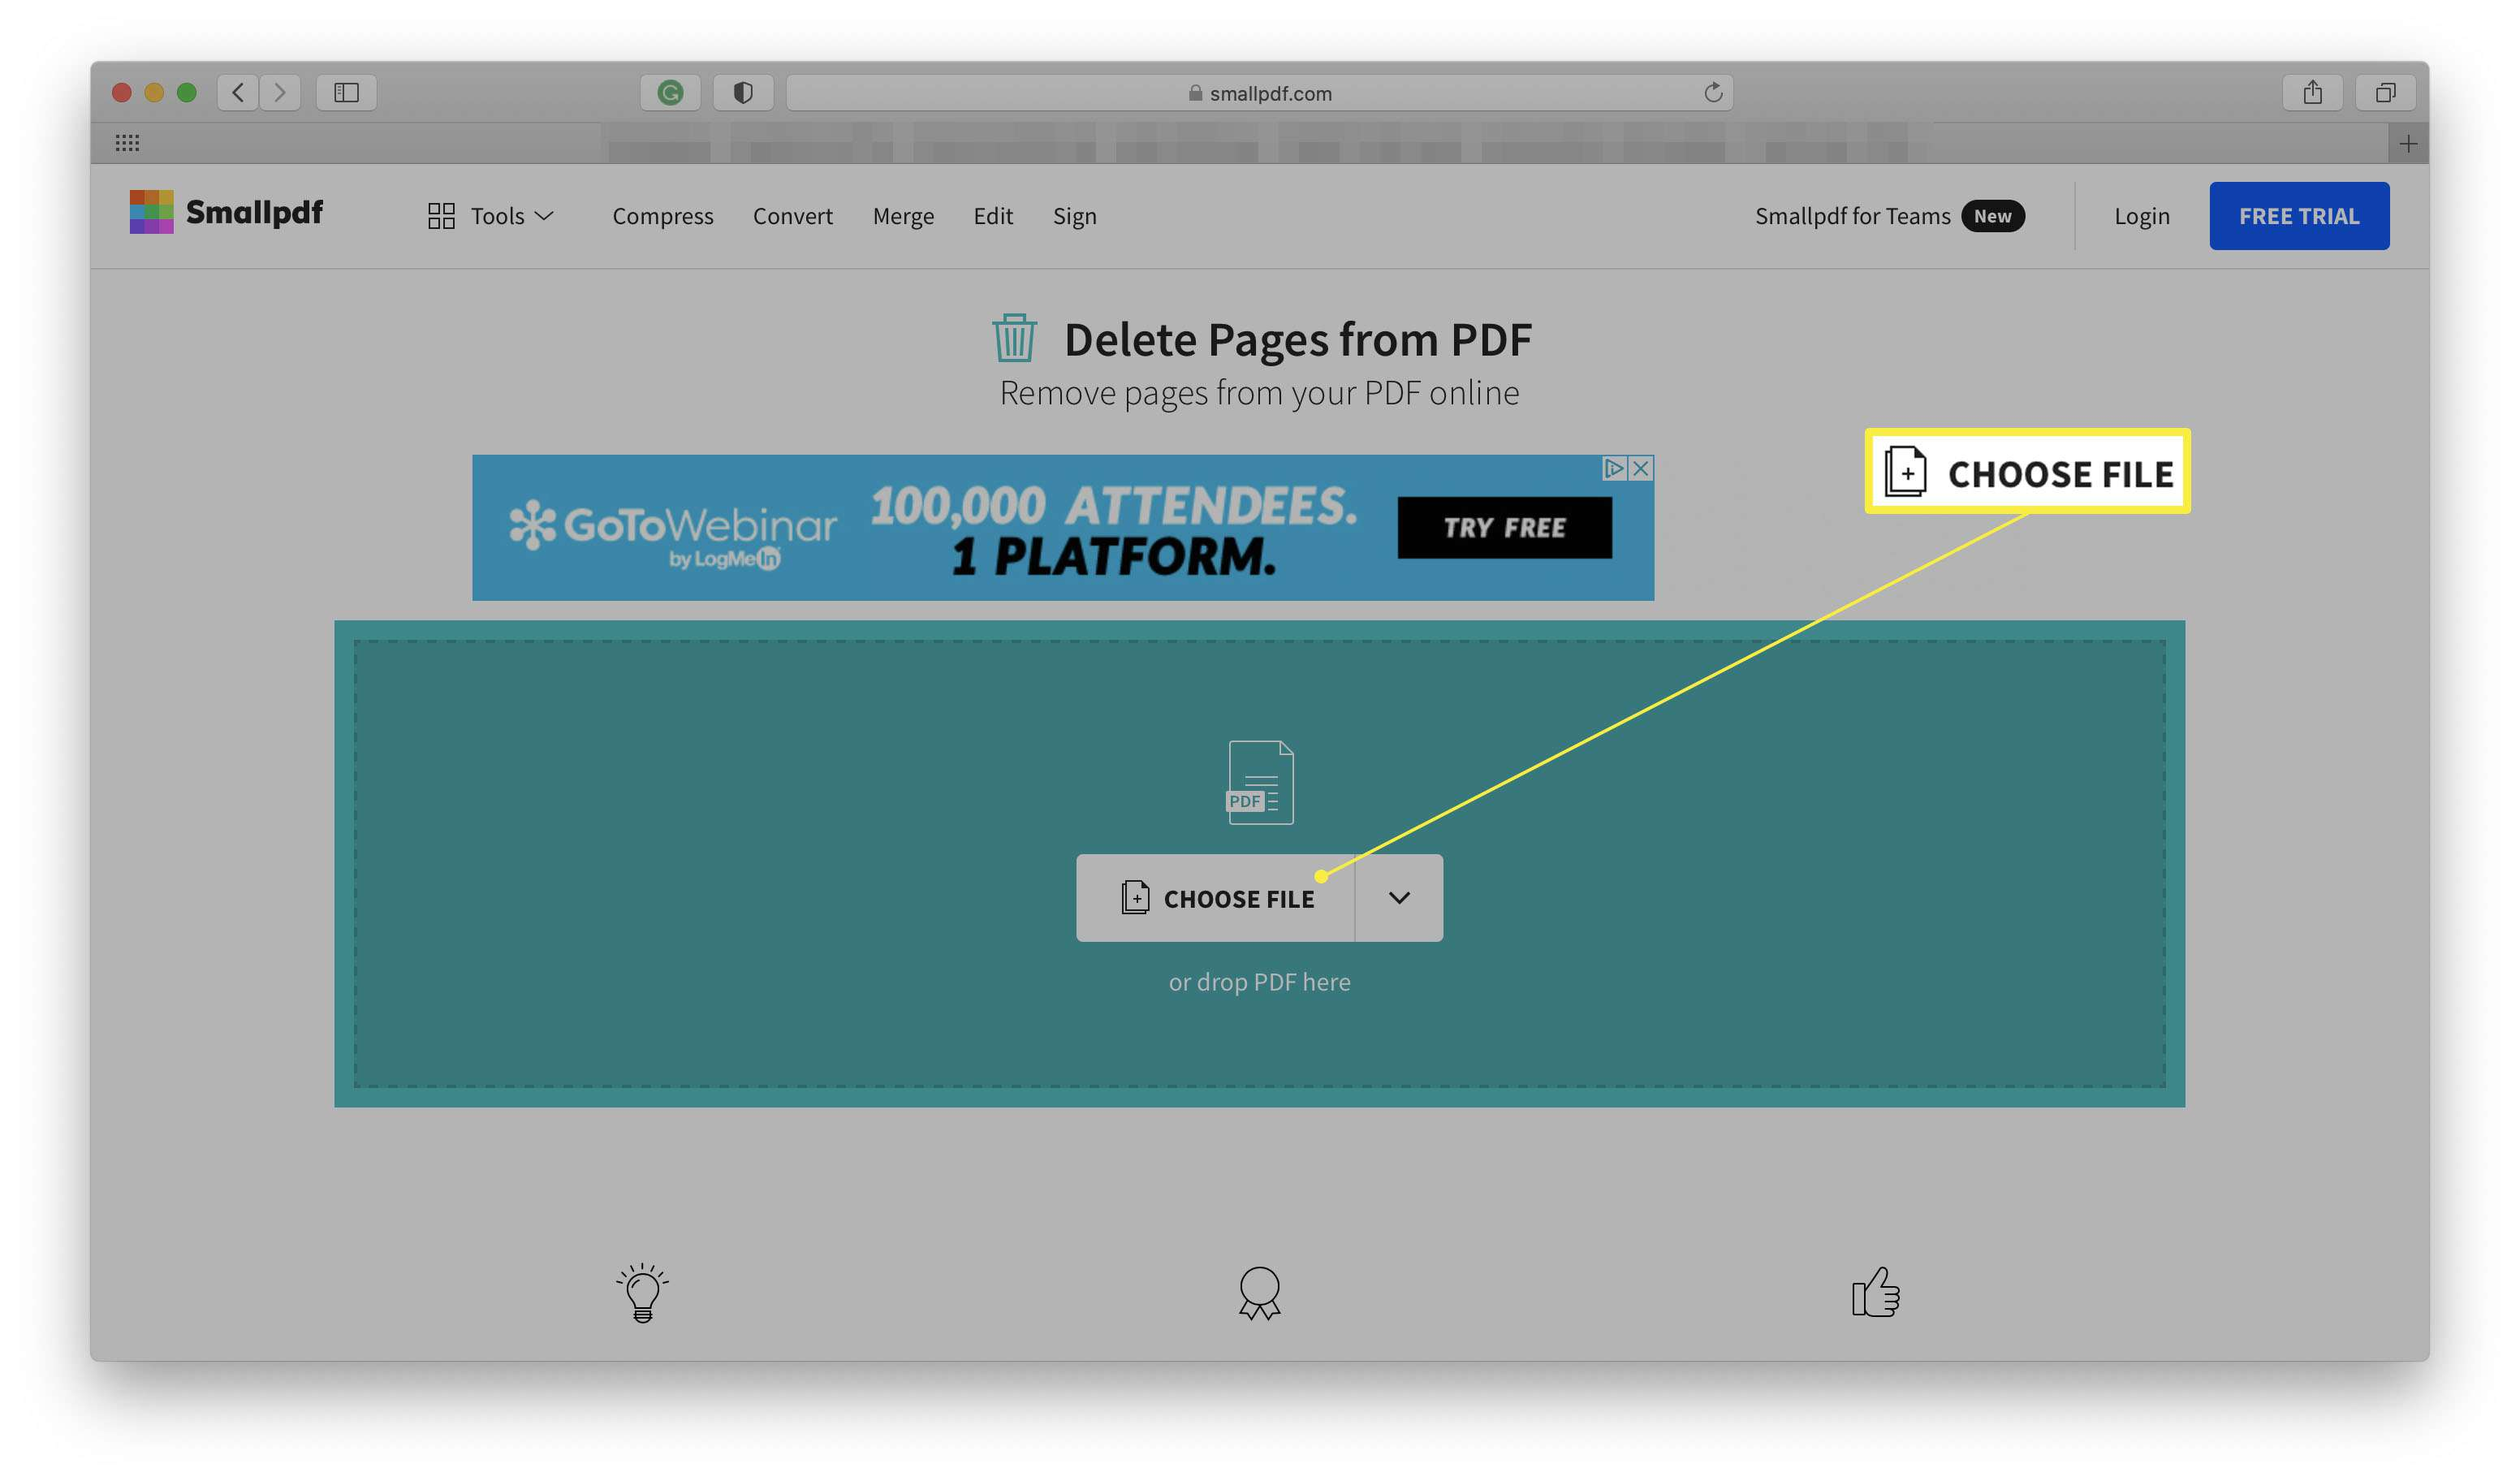 Smallpdf website with Choose File highlighted